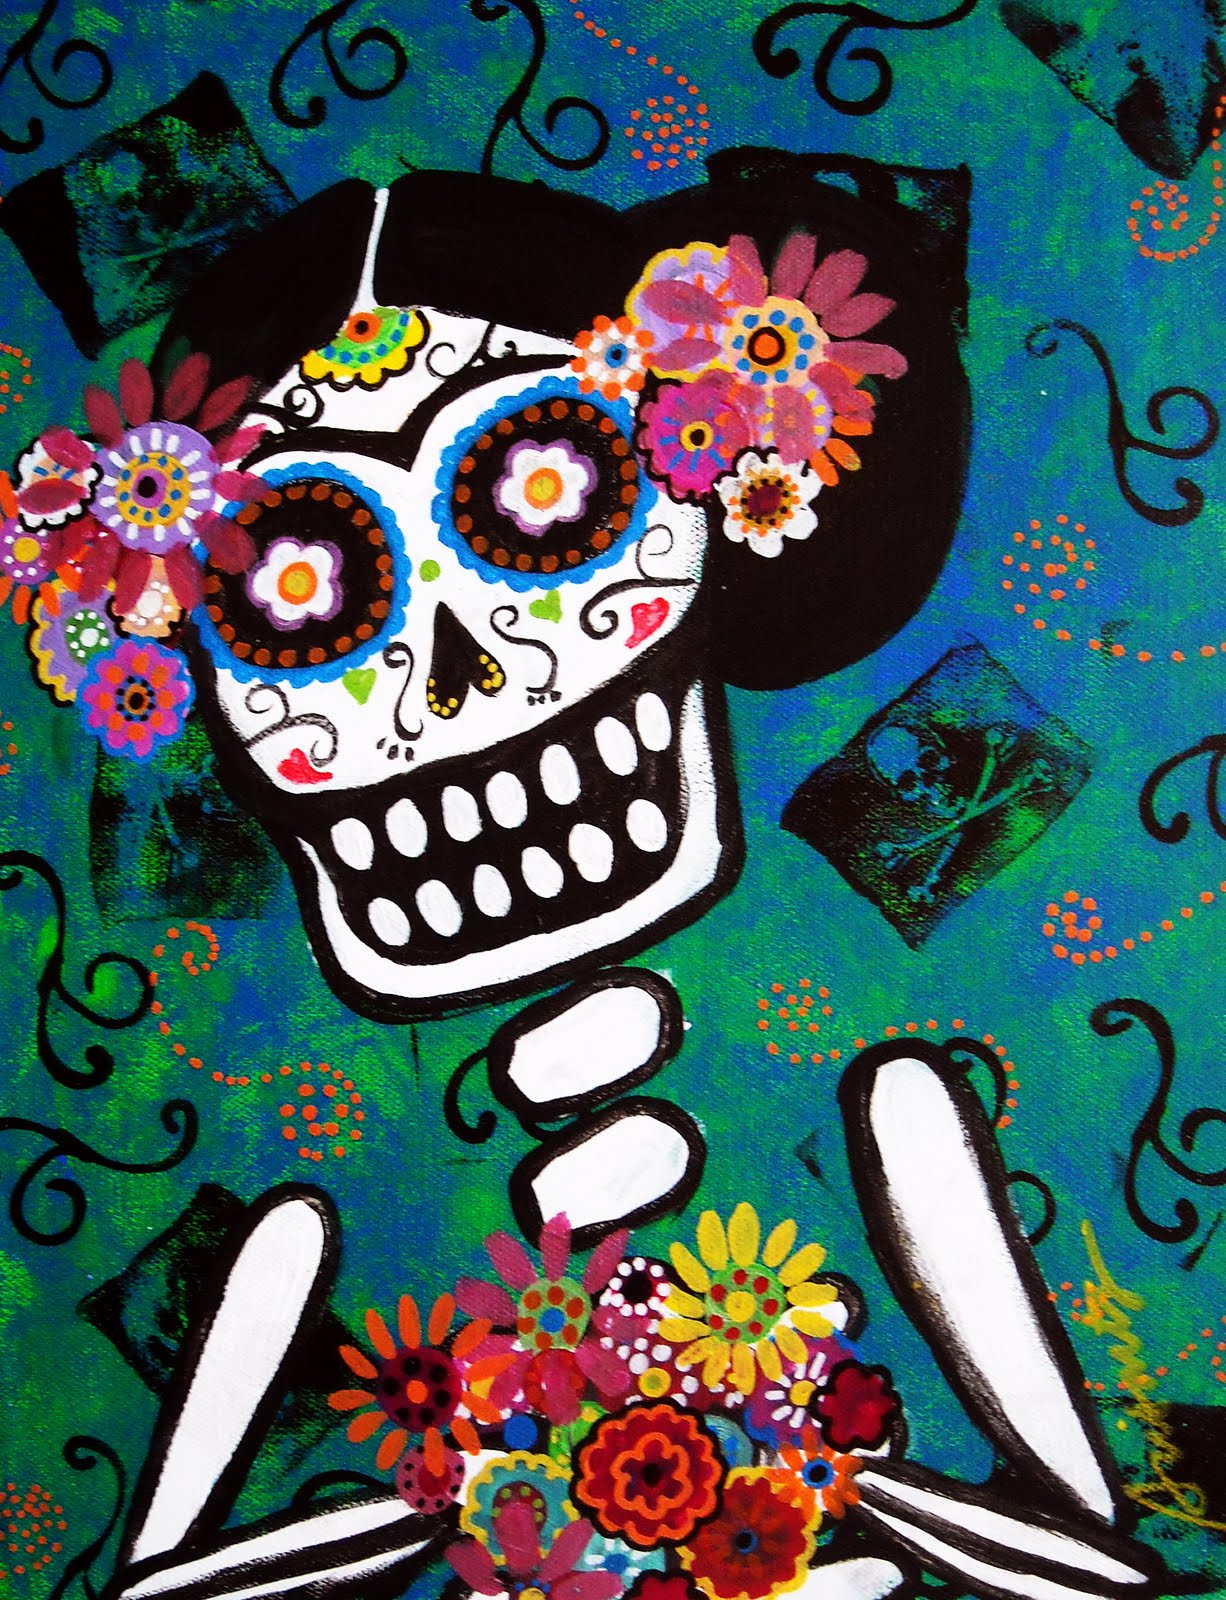 This Is Another Day Of The Dead Artwork With Frida Kahlo As Subject Done In 11 X 14 Inches Stretched Canvas